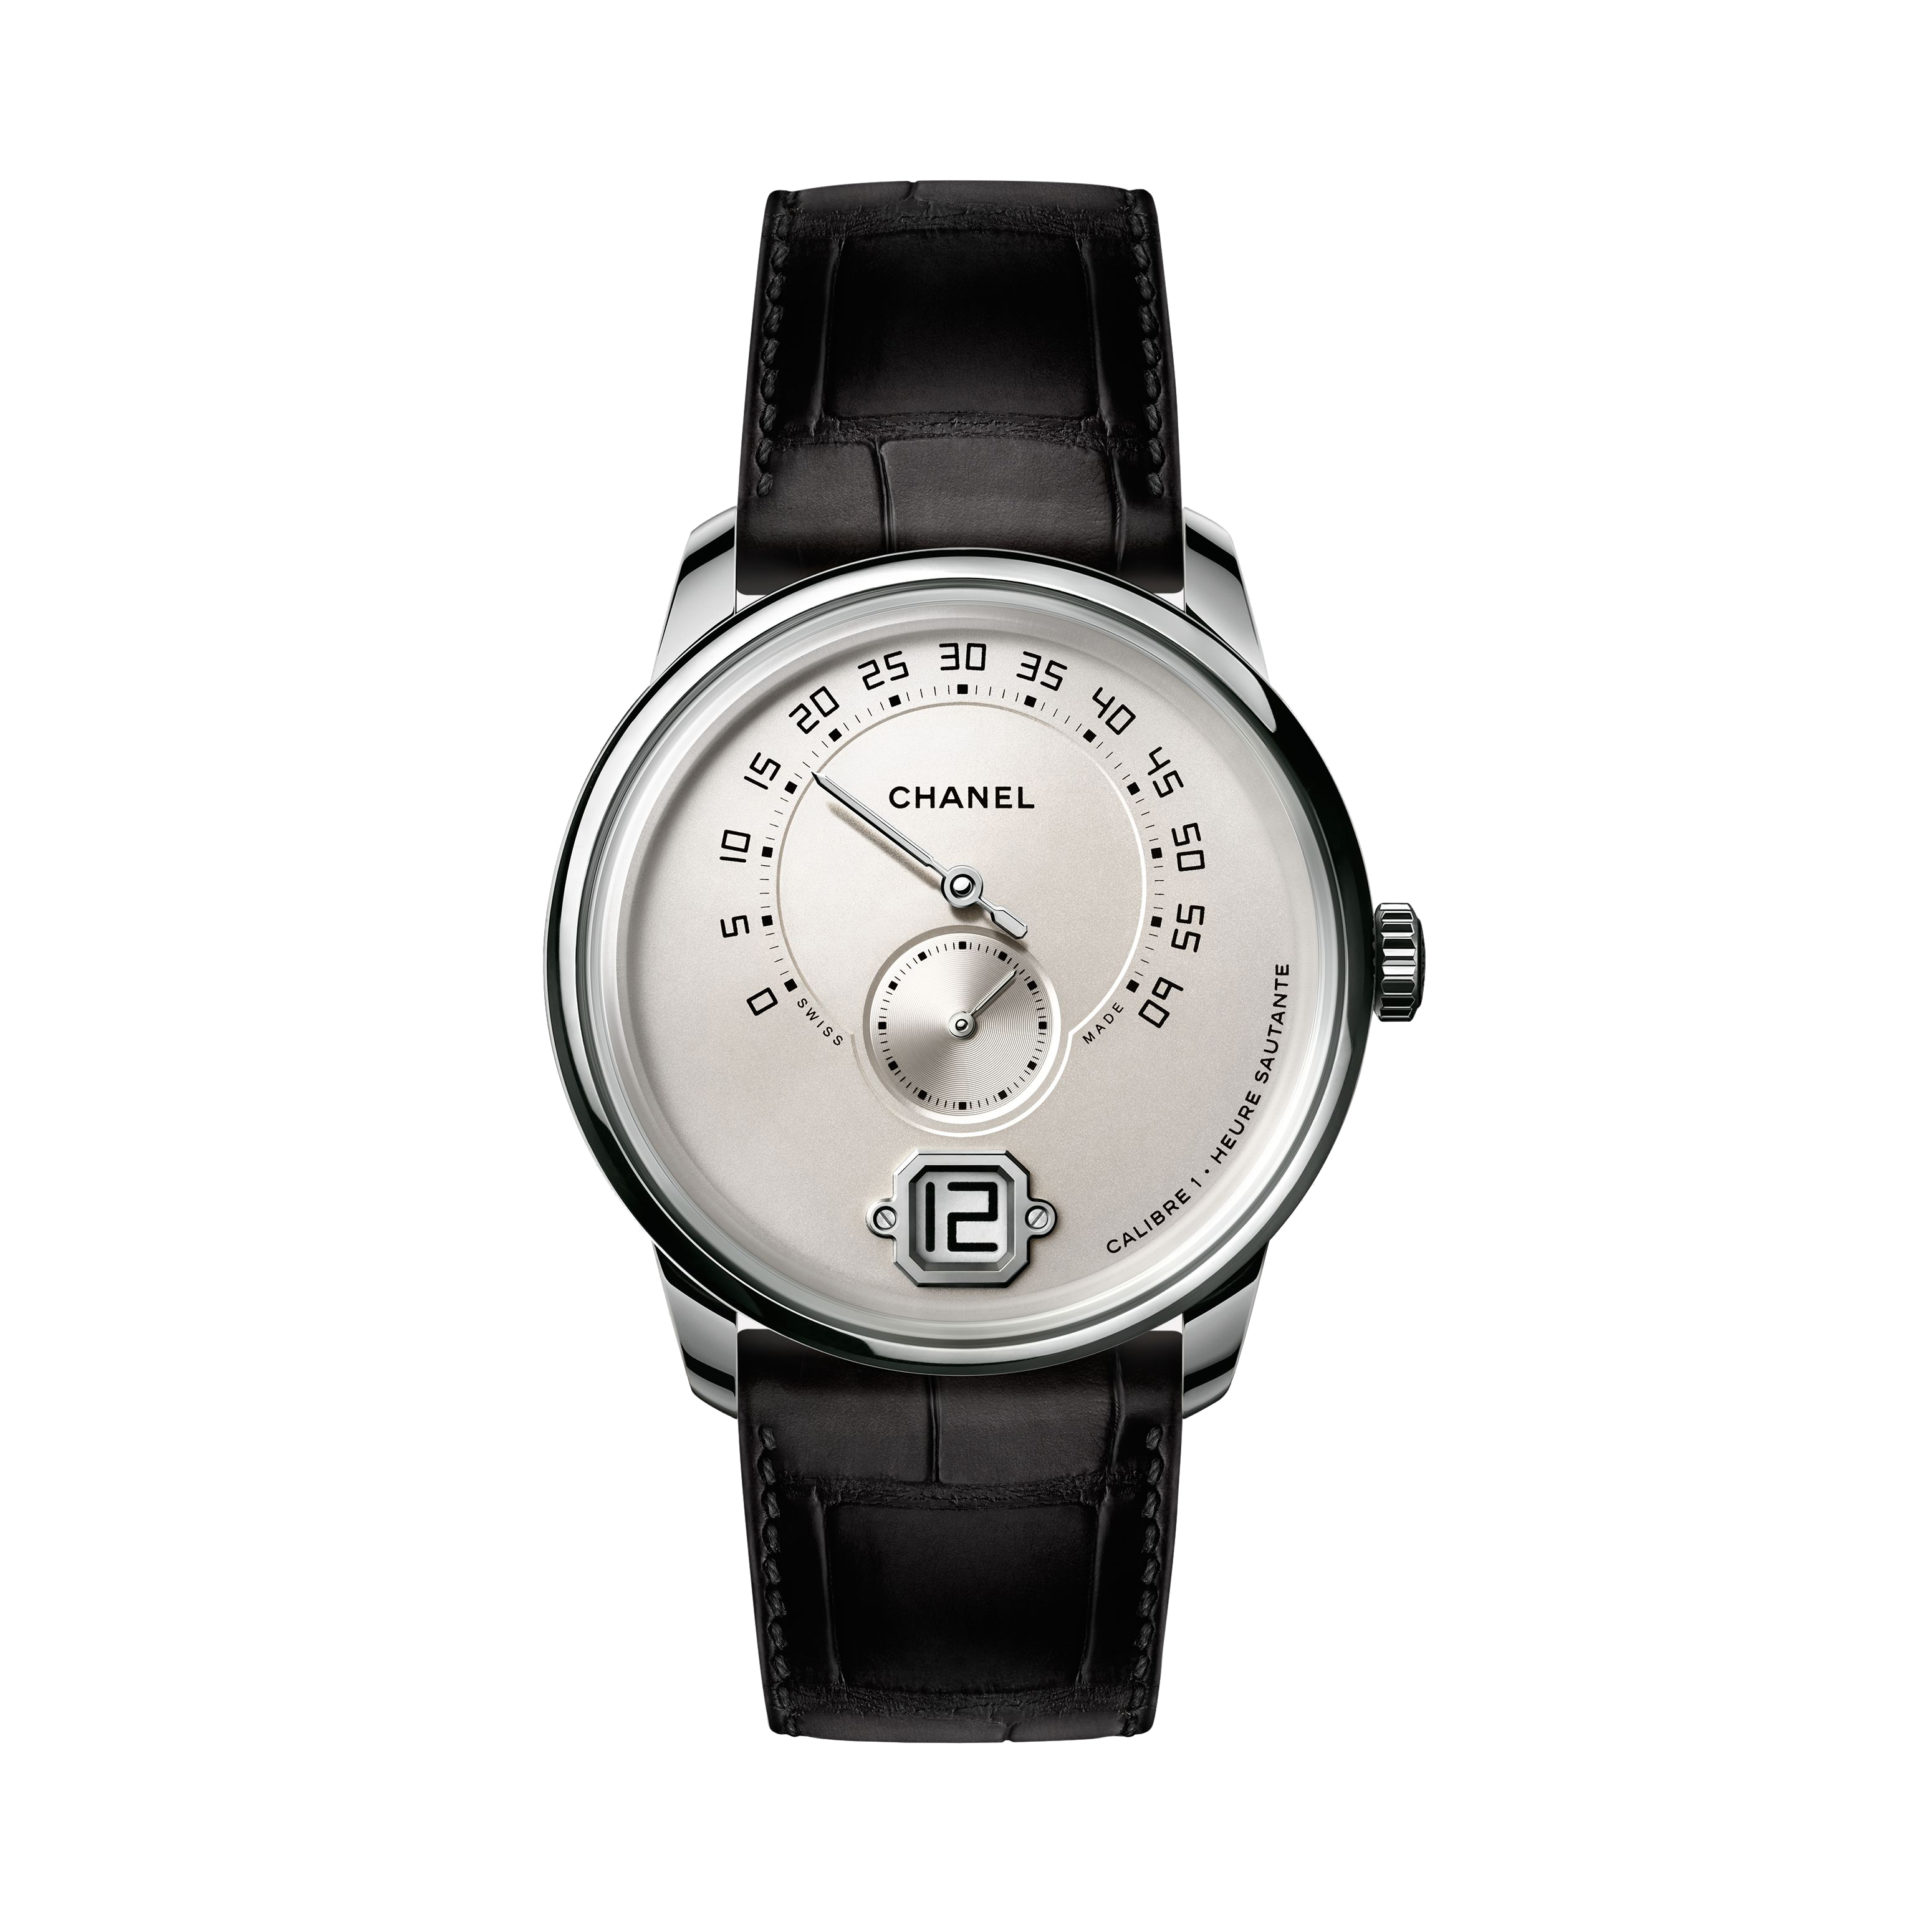 Chanel-Monsieur-de-Chanel-Hall-of-Time-H4799